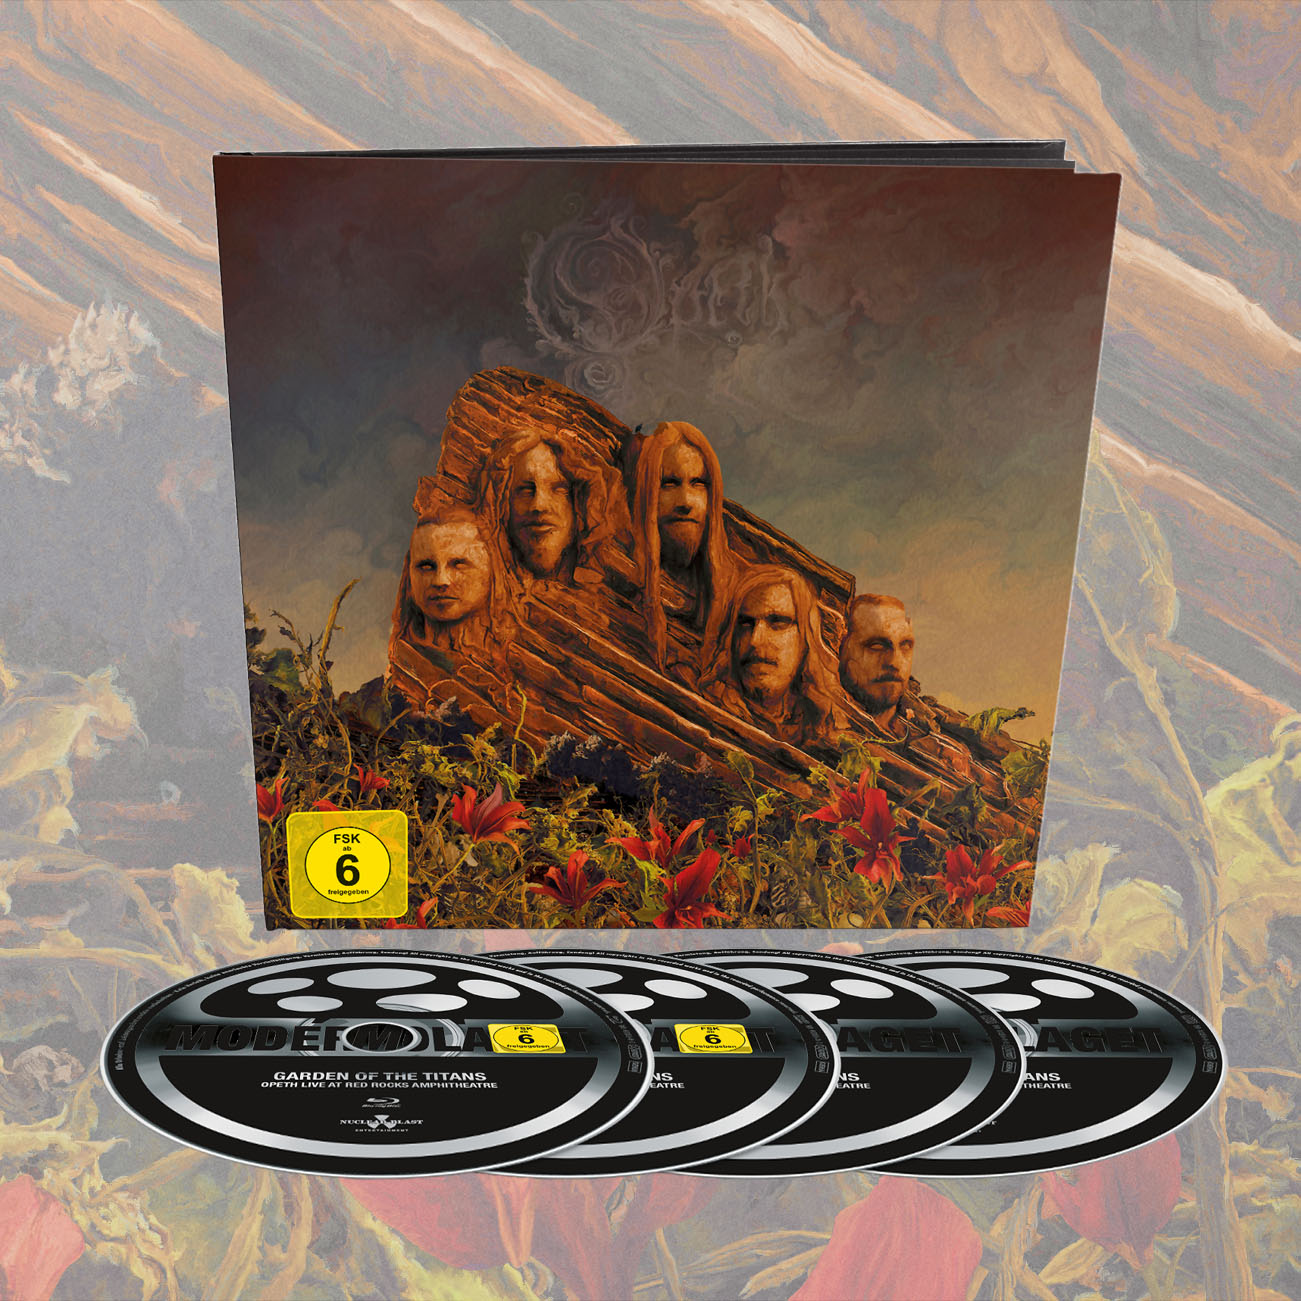 Opeth - 'Garden Of The Titans (Opeth Live at Red Rocks)' Earbook Edition - Opeth